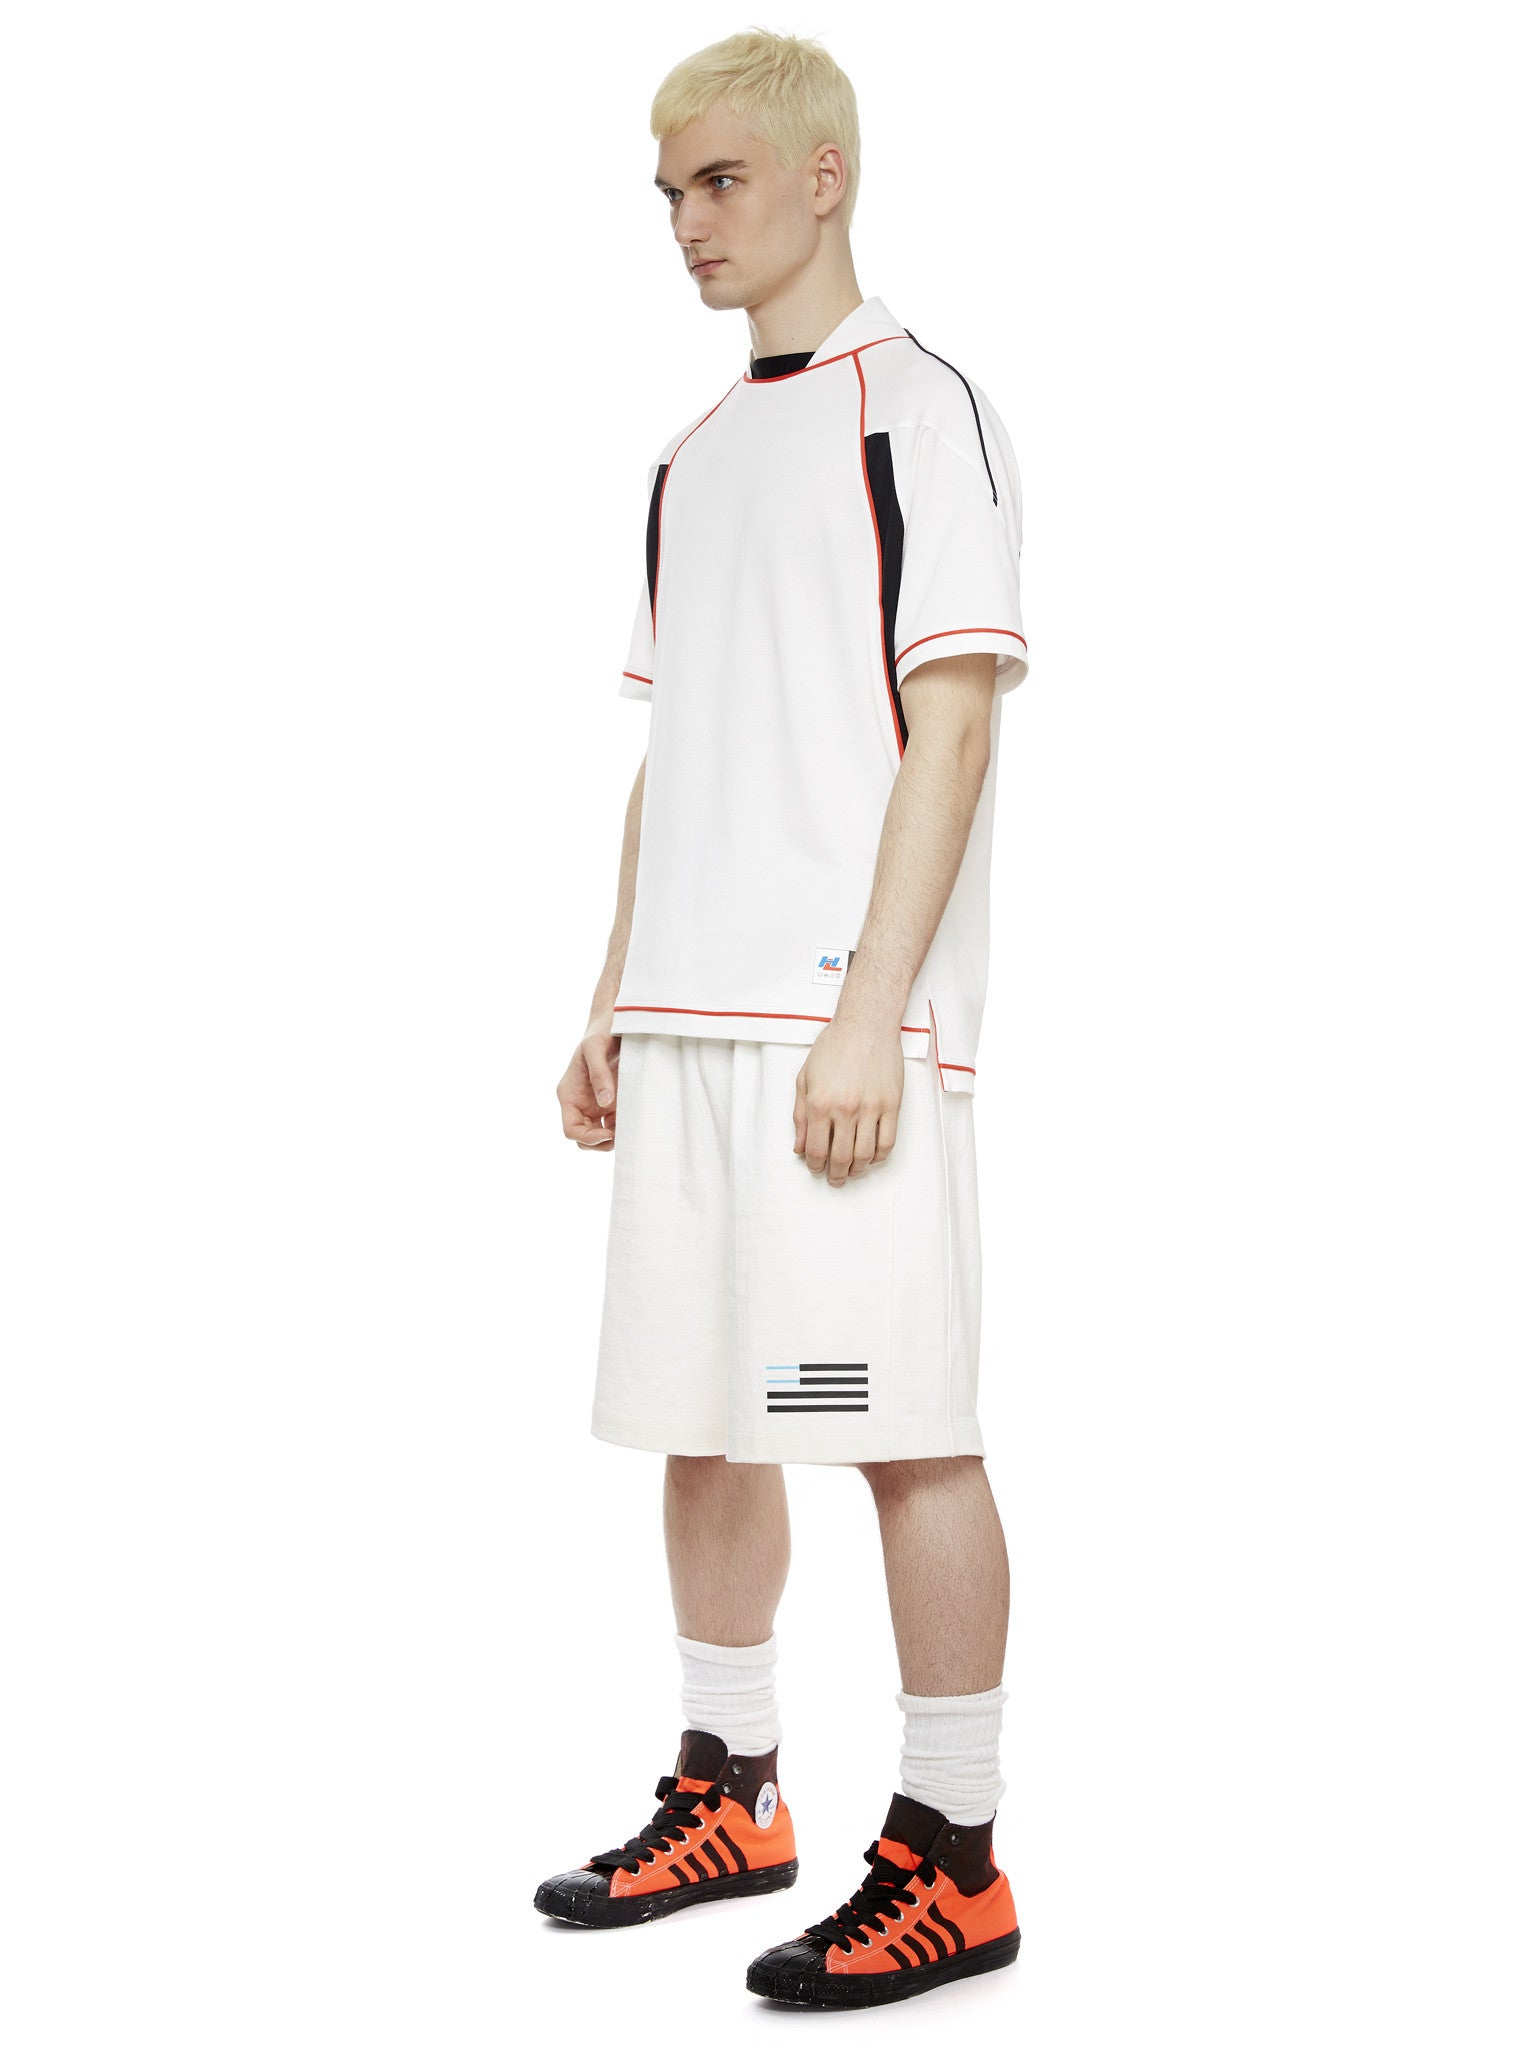 S/S Jersey in White